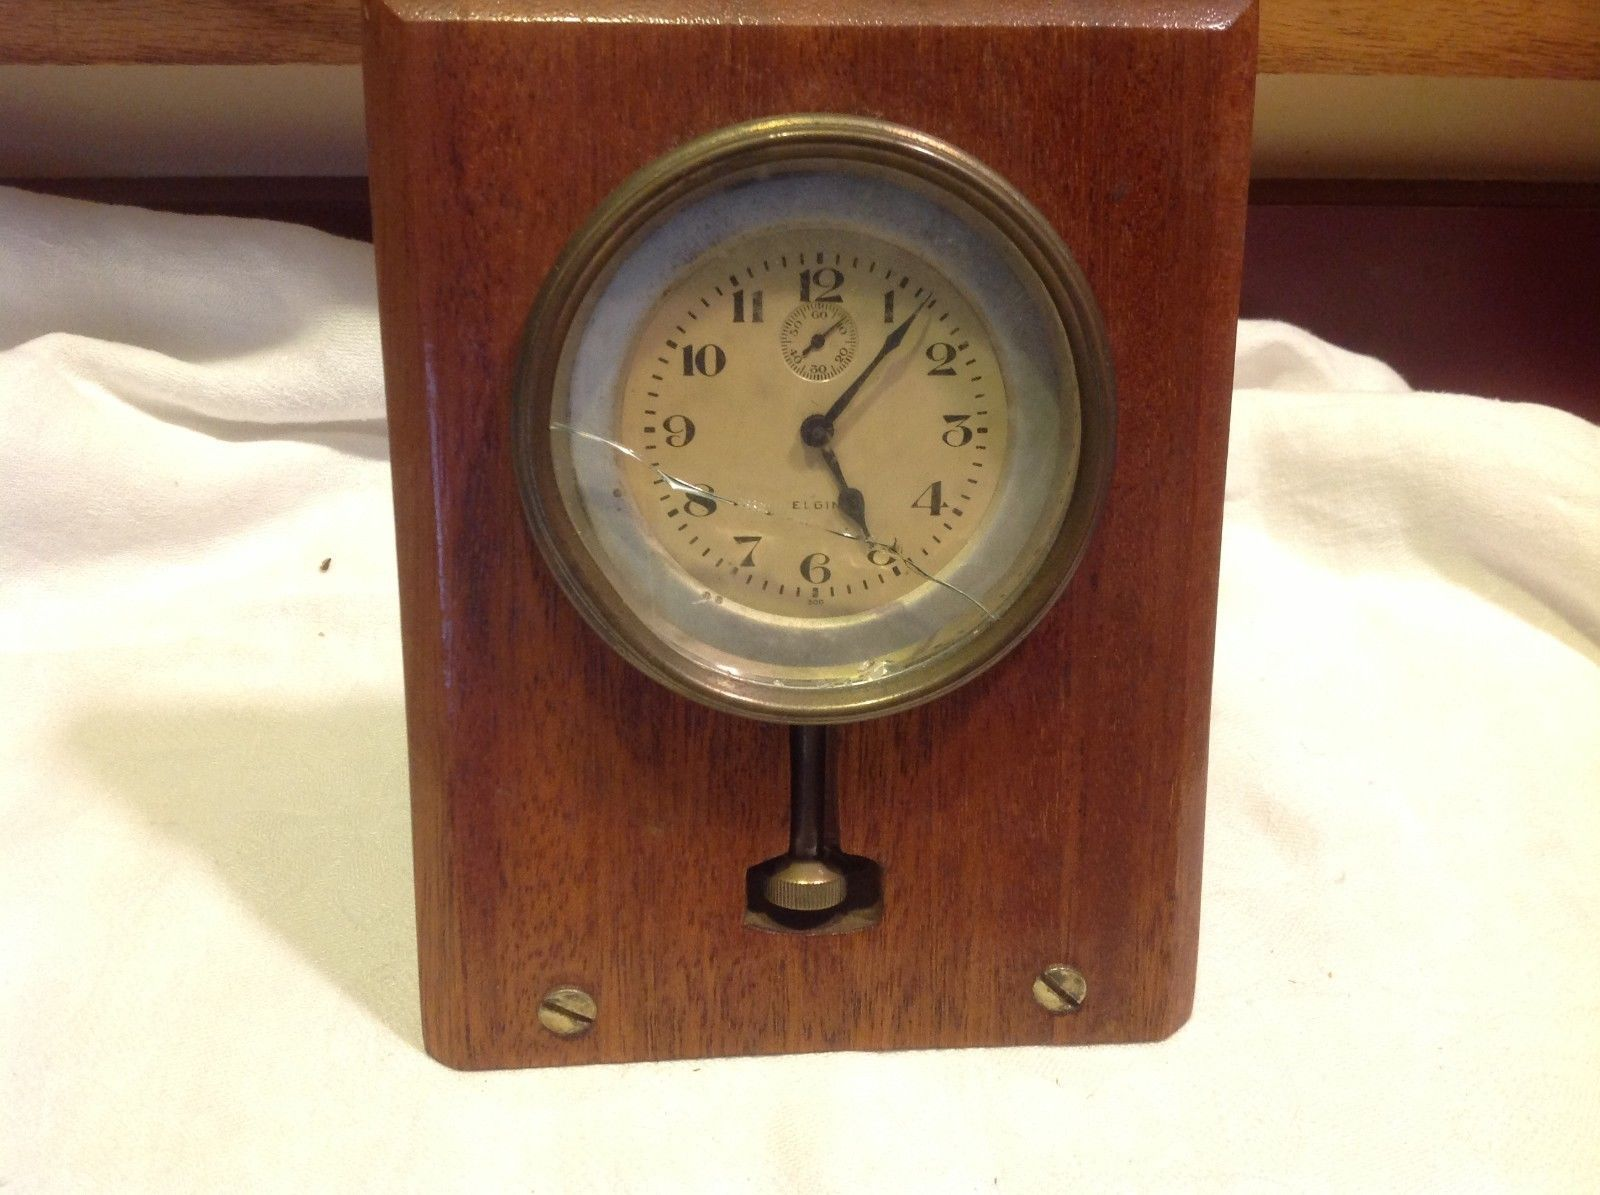 Vintage Elgin  wind up watch in wood mantel case estate repurpose steampunk